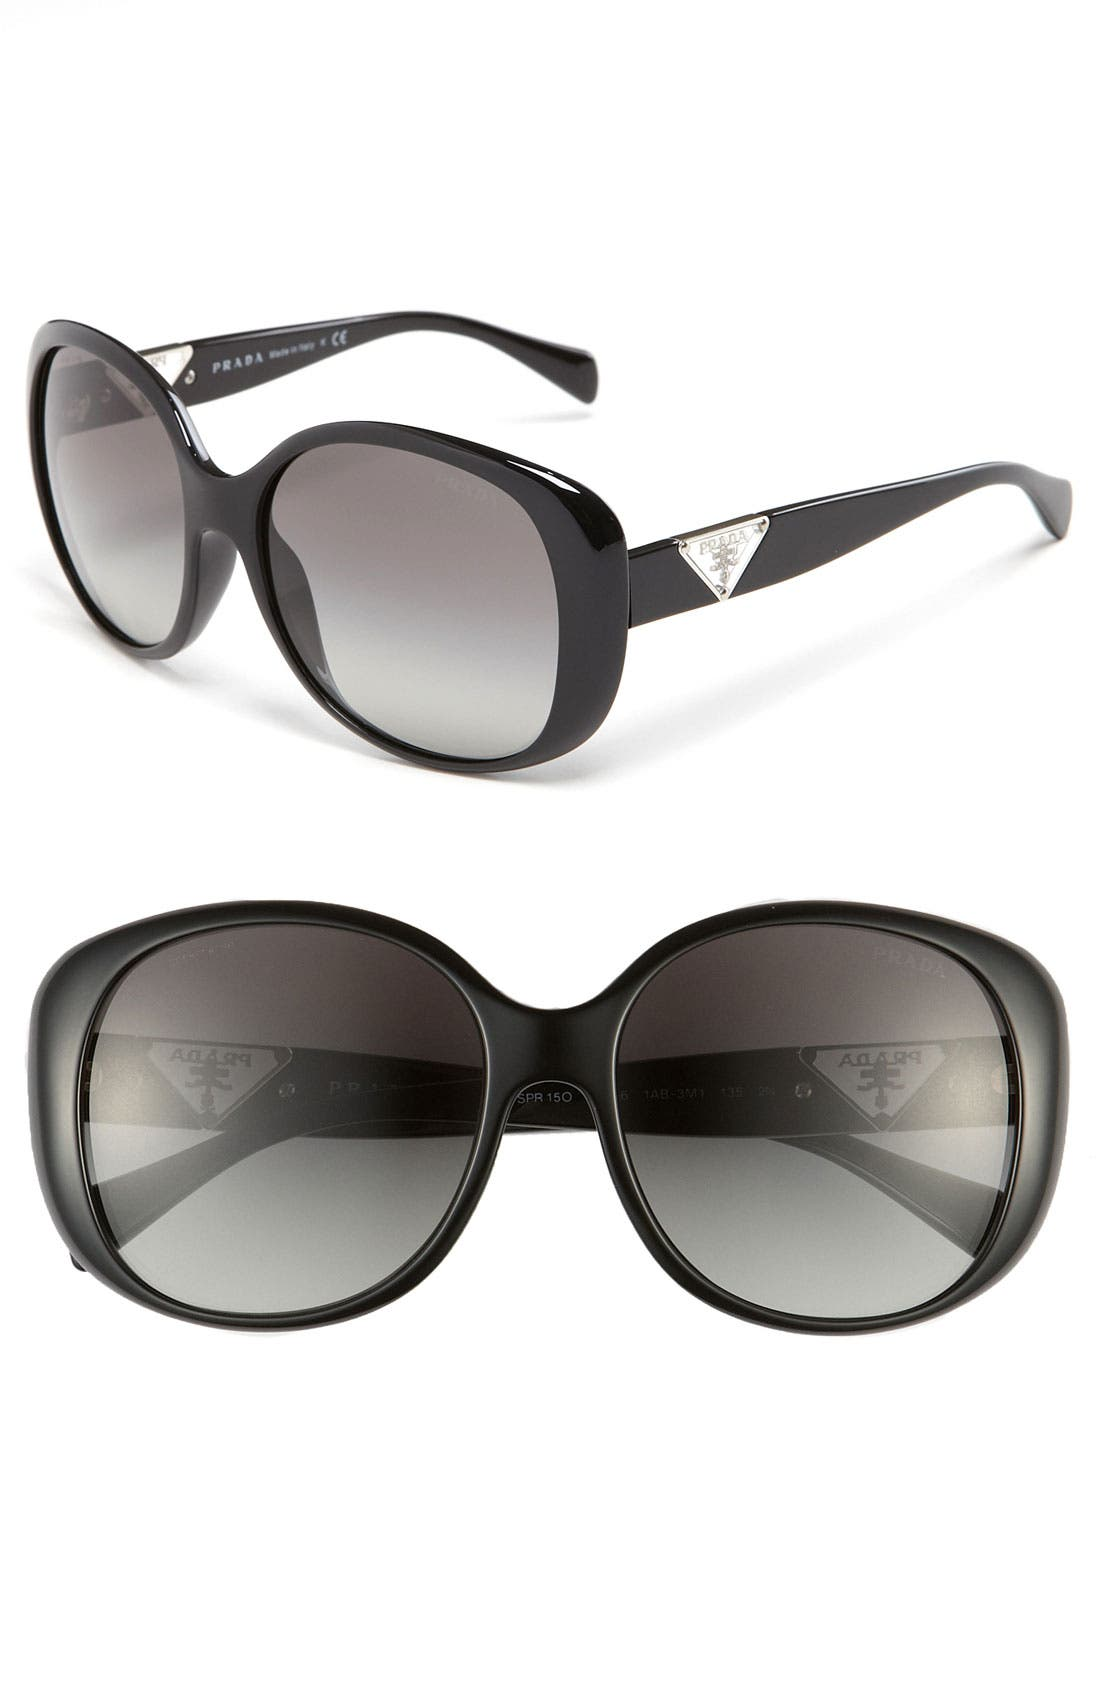 Main Image - Prada 56mm Oversized Sunglasses